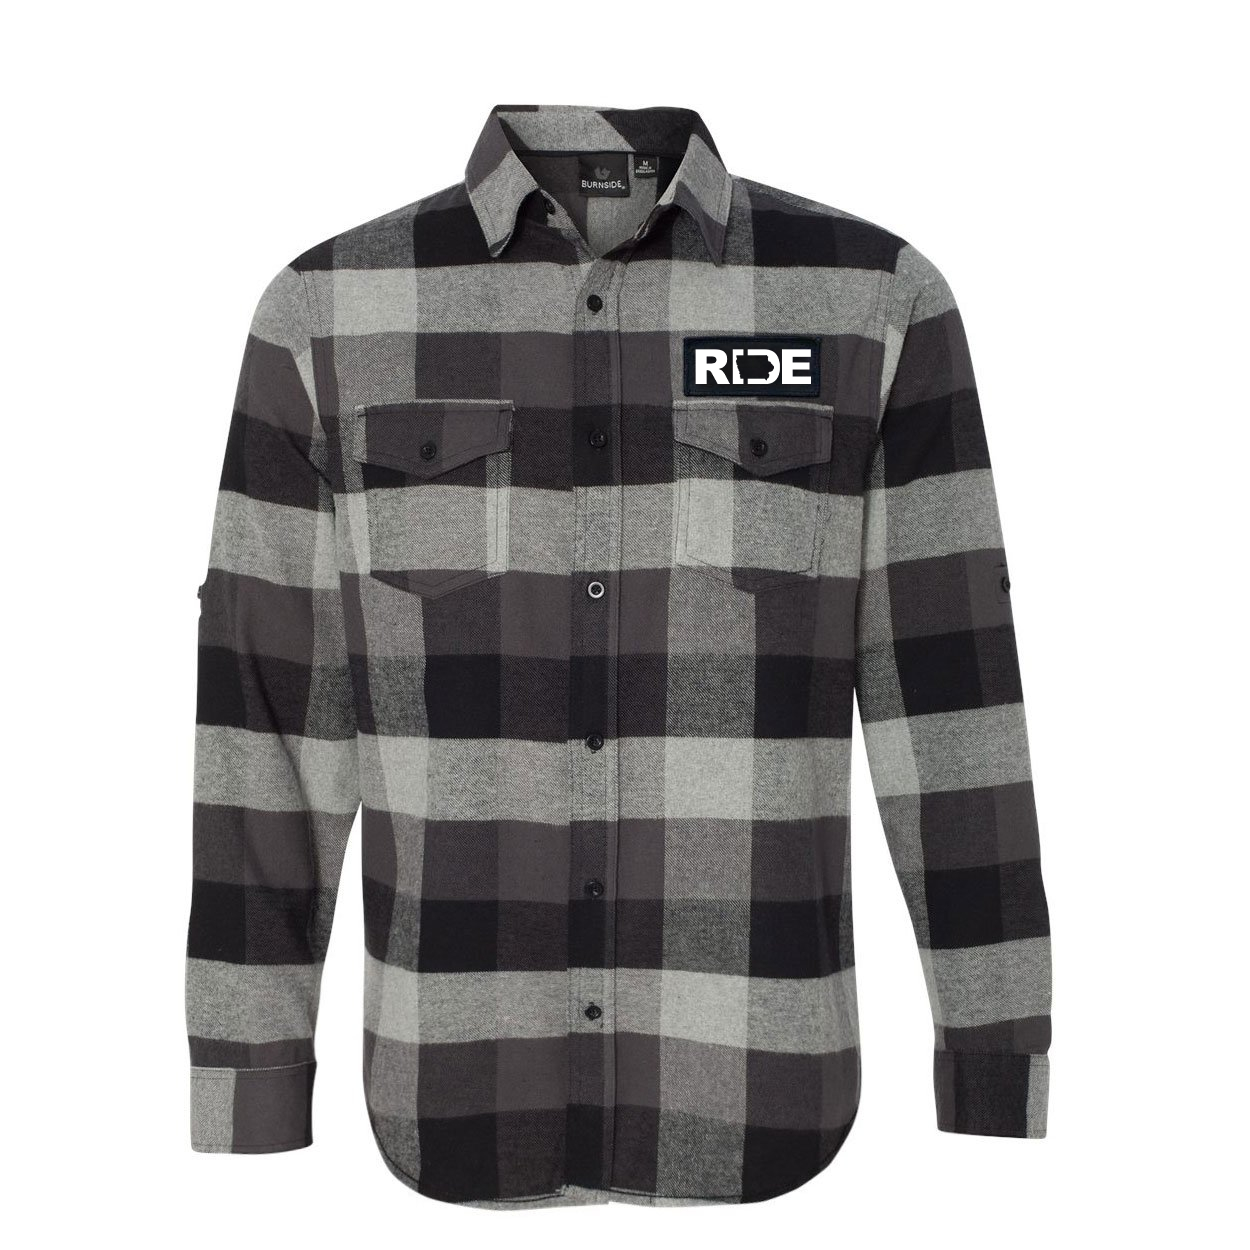 Ride Iowa Classic Unisex Long Sleeve Woven Patch Flannel Shirt Black/Gray (White Logo)